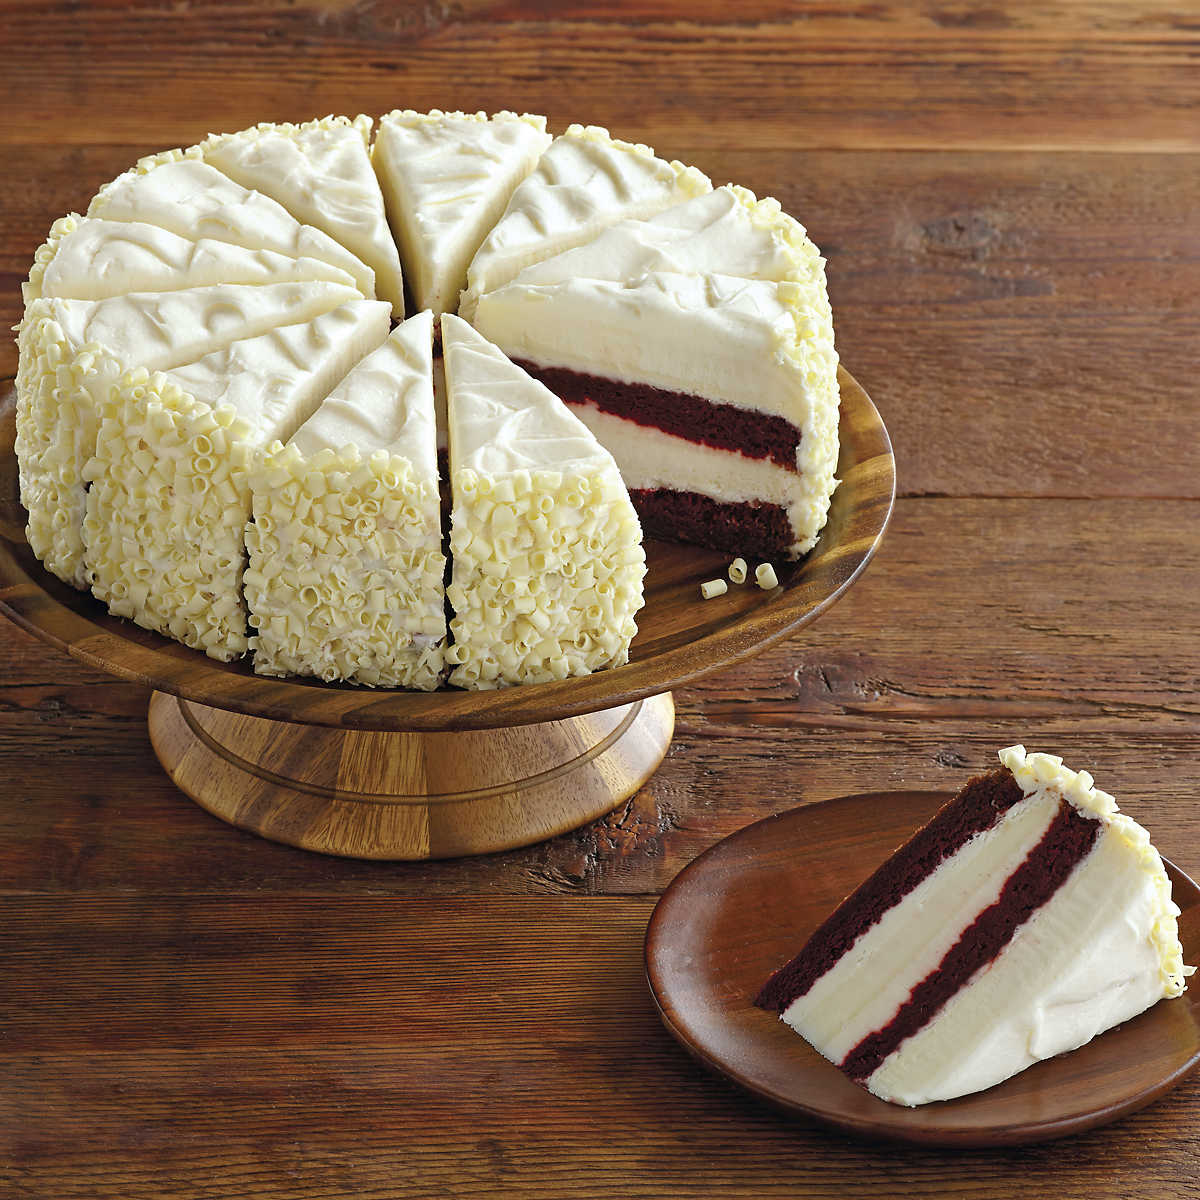 Cheesecake Factory Cheesecake Sizes The Cheesecake Factory®